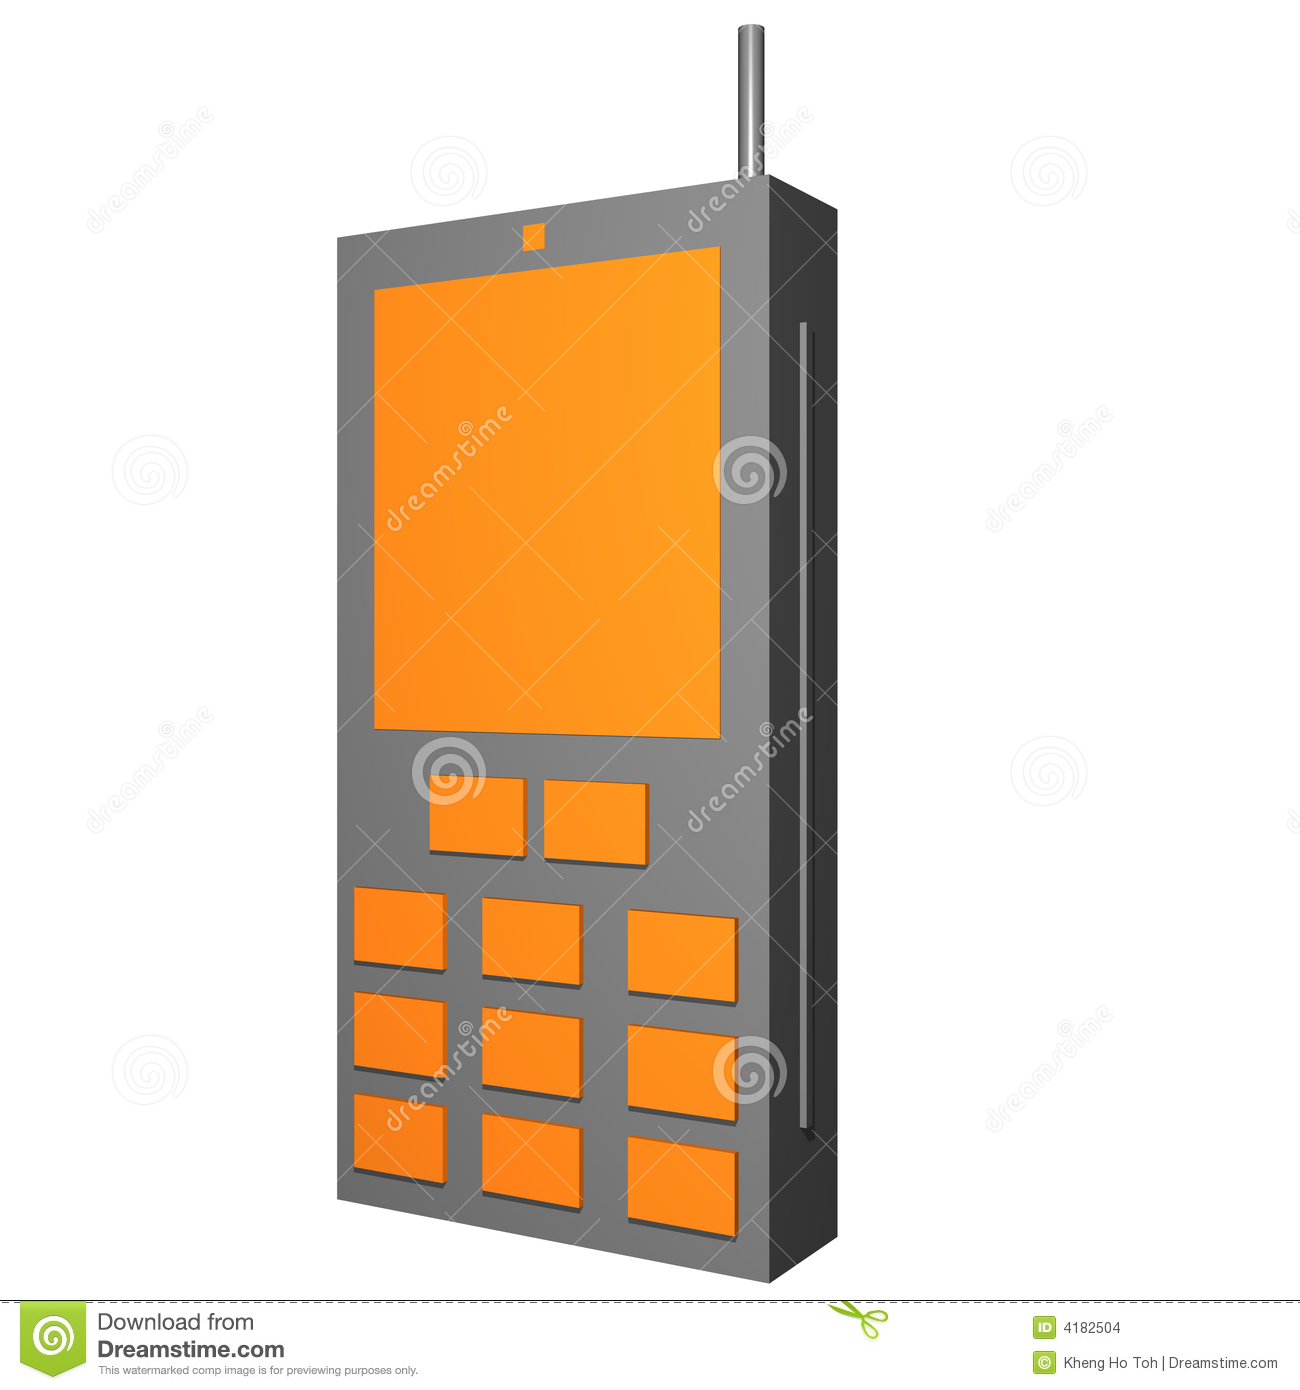 DIAGRAM] Block Diagram Handphone FULL Version HD Quality Diagram Handphone  - NEONDIAGRAM.ARCIERIARCOBALENO.ITDiagram Database